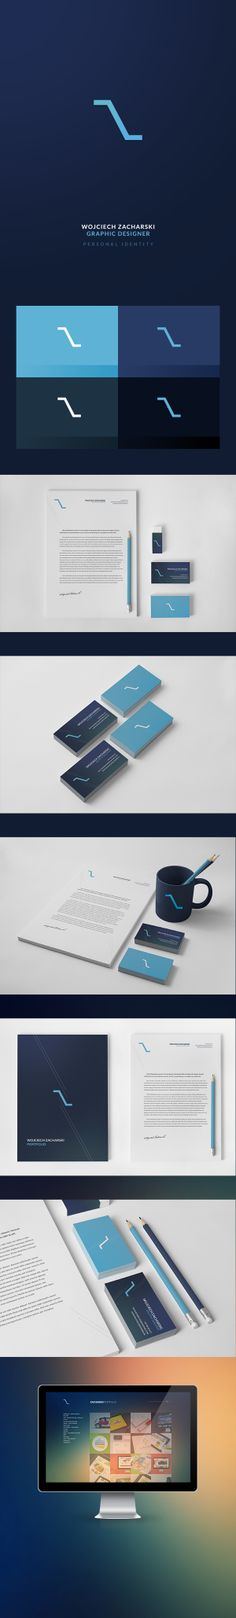 Zacharski Portfolio - Personal Identity by Wojciech Zacharski, via Behance